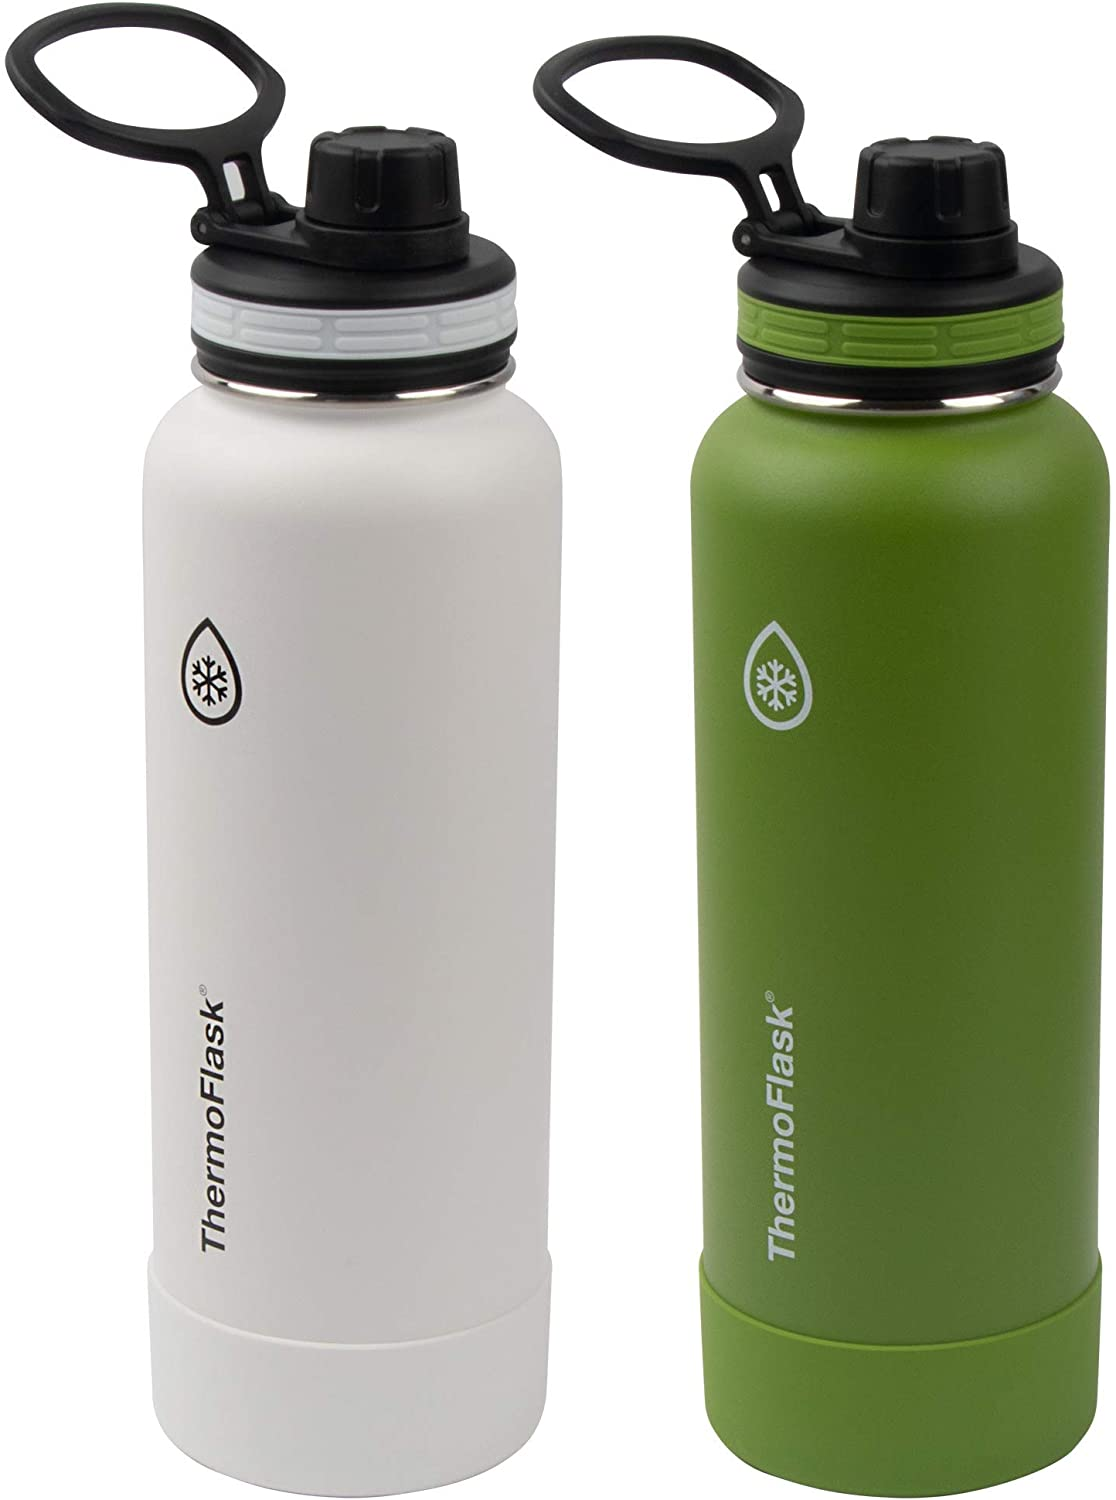 Thermoflask Double Wall Vacuum Insulated Stainless Steel Water Bottle 2-Pack, Arctic/Grasshopper